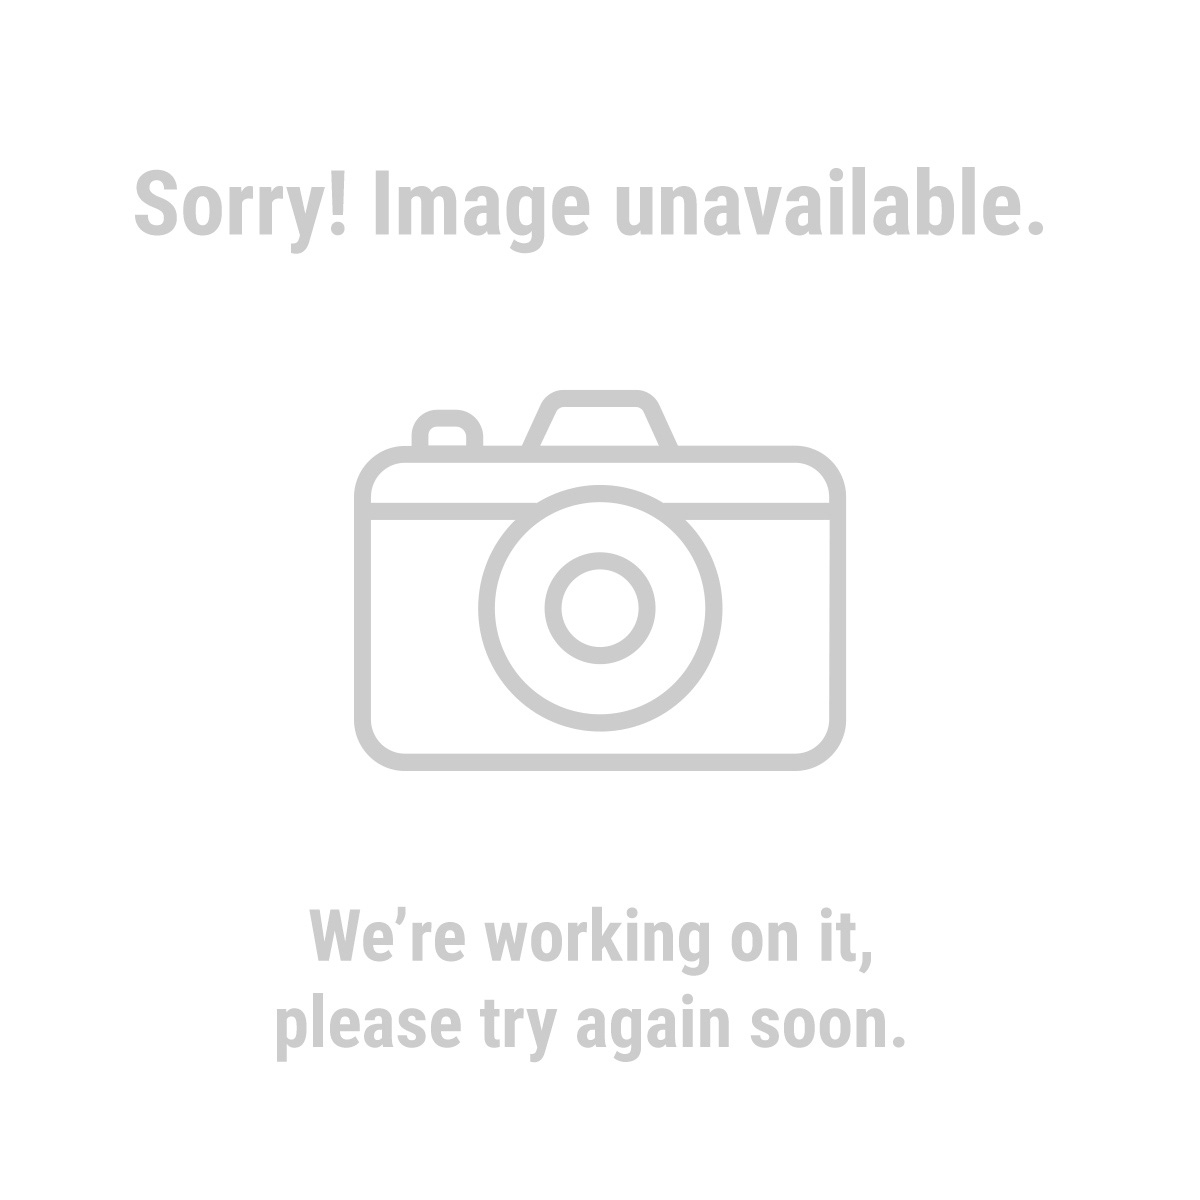 3 Ton Steel Heavy Duty Floor Jack With Rapid Pump 174